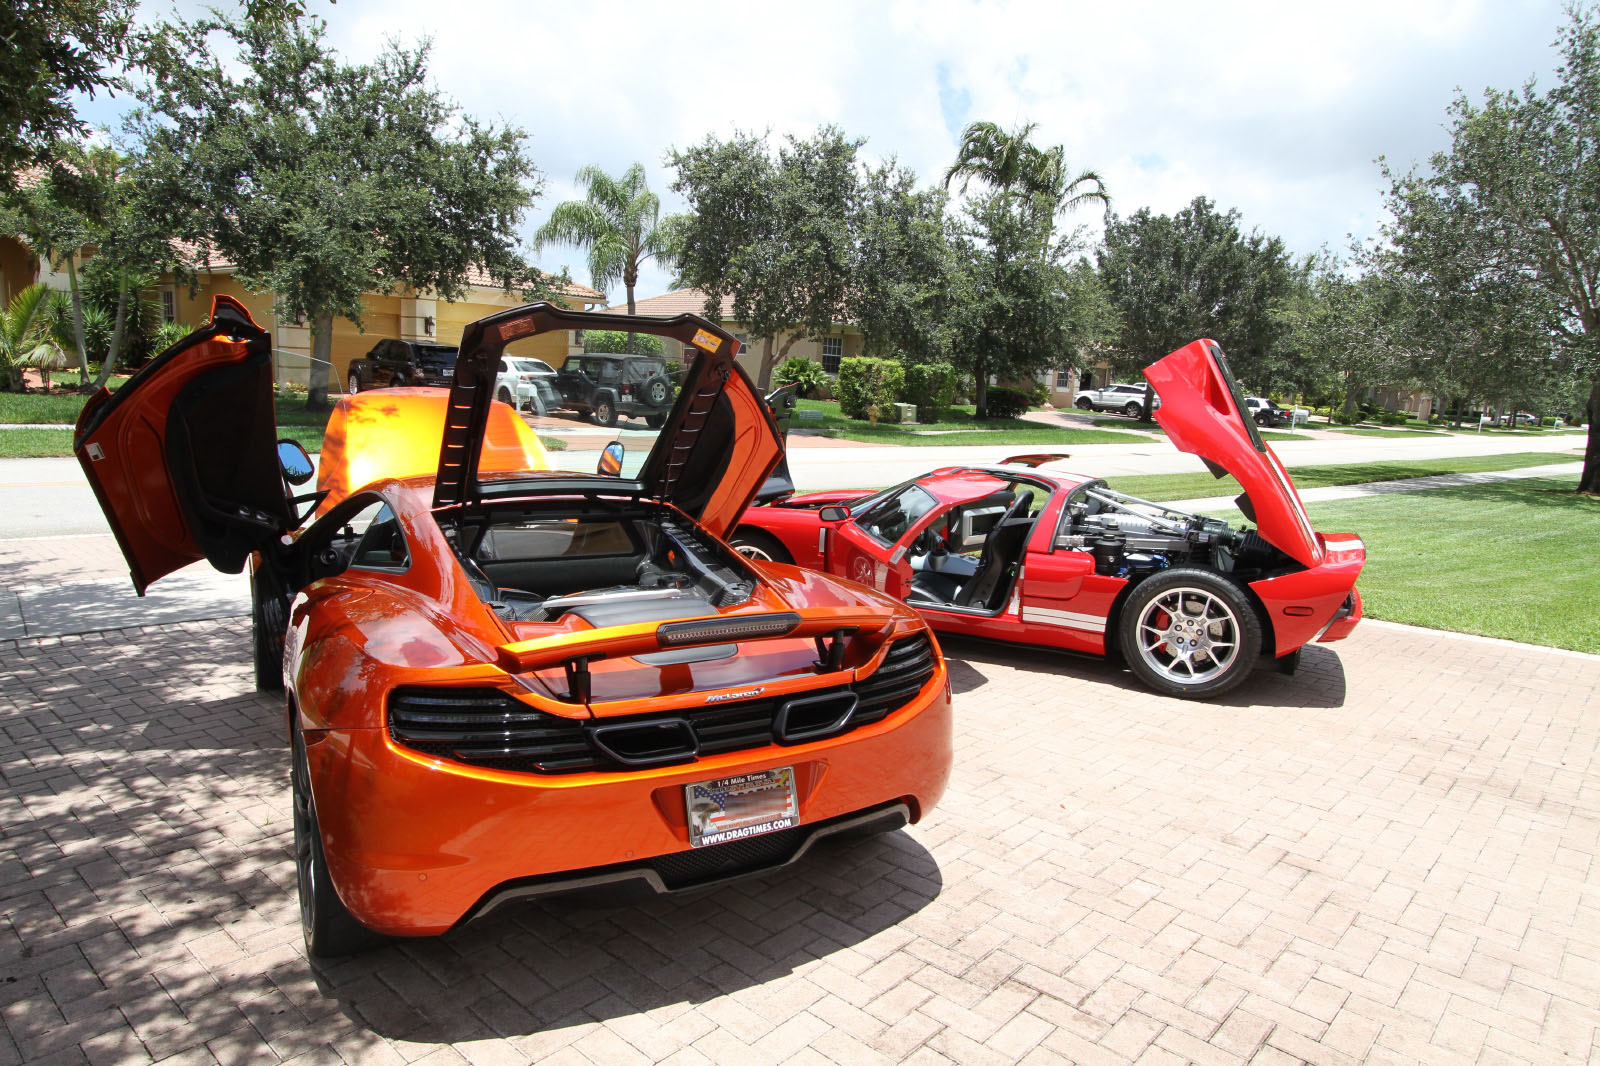 mclaren-mp4-12c-volcano-orange-vs-ford-gt-red-white-021